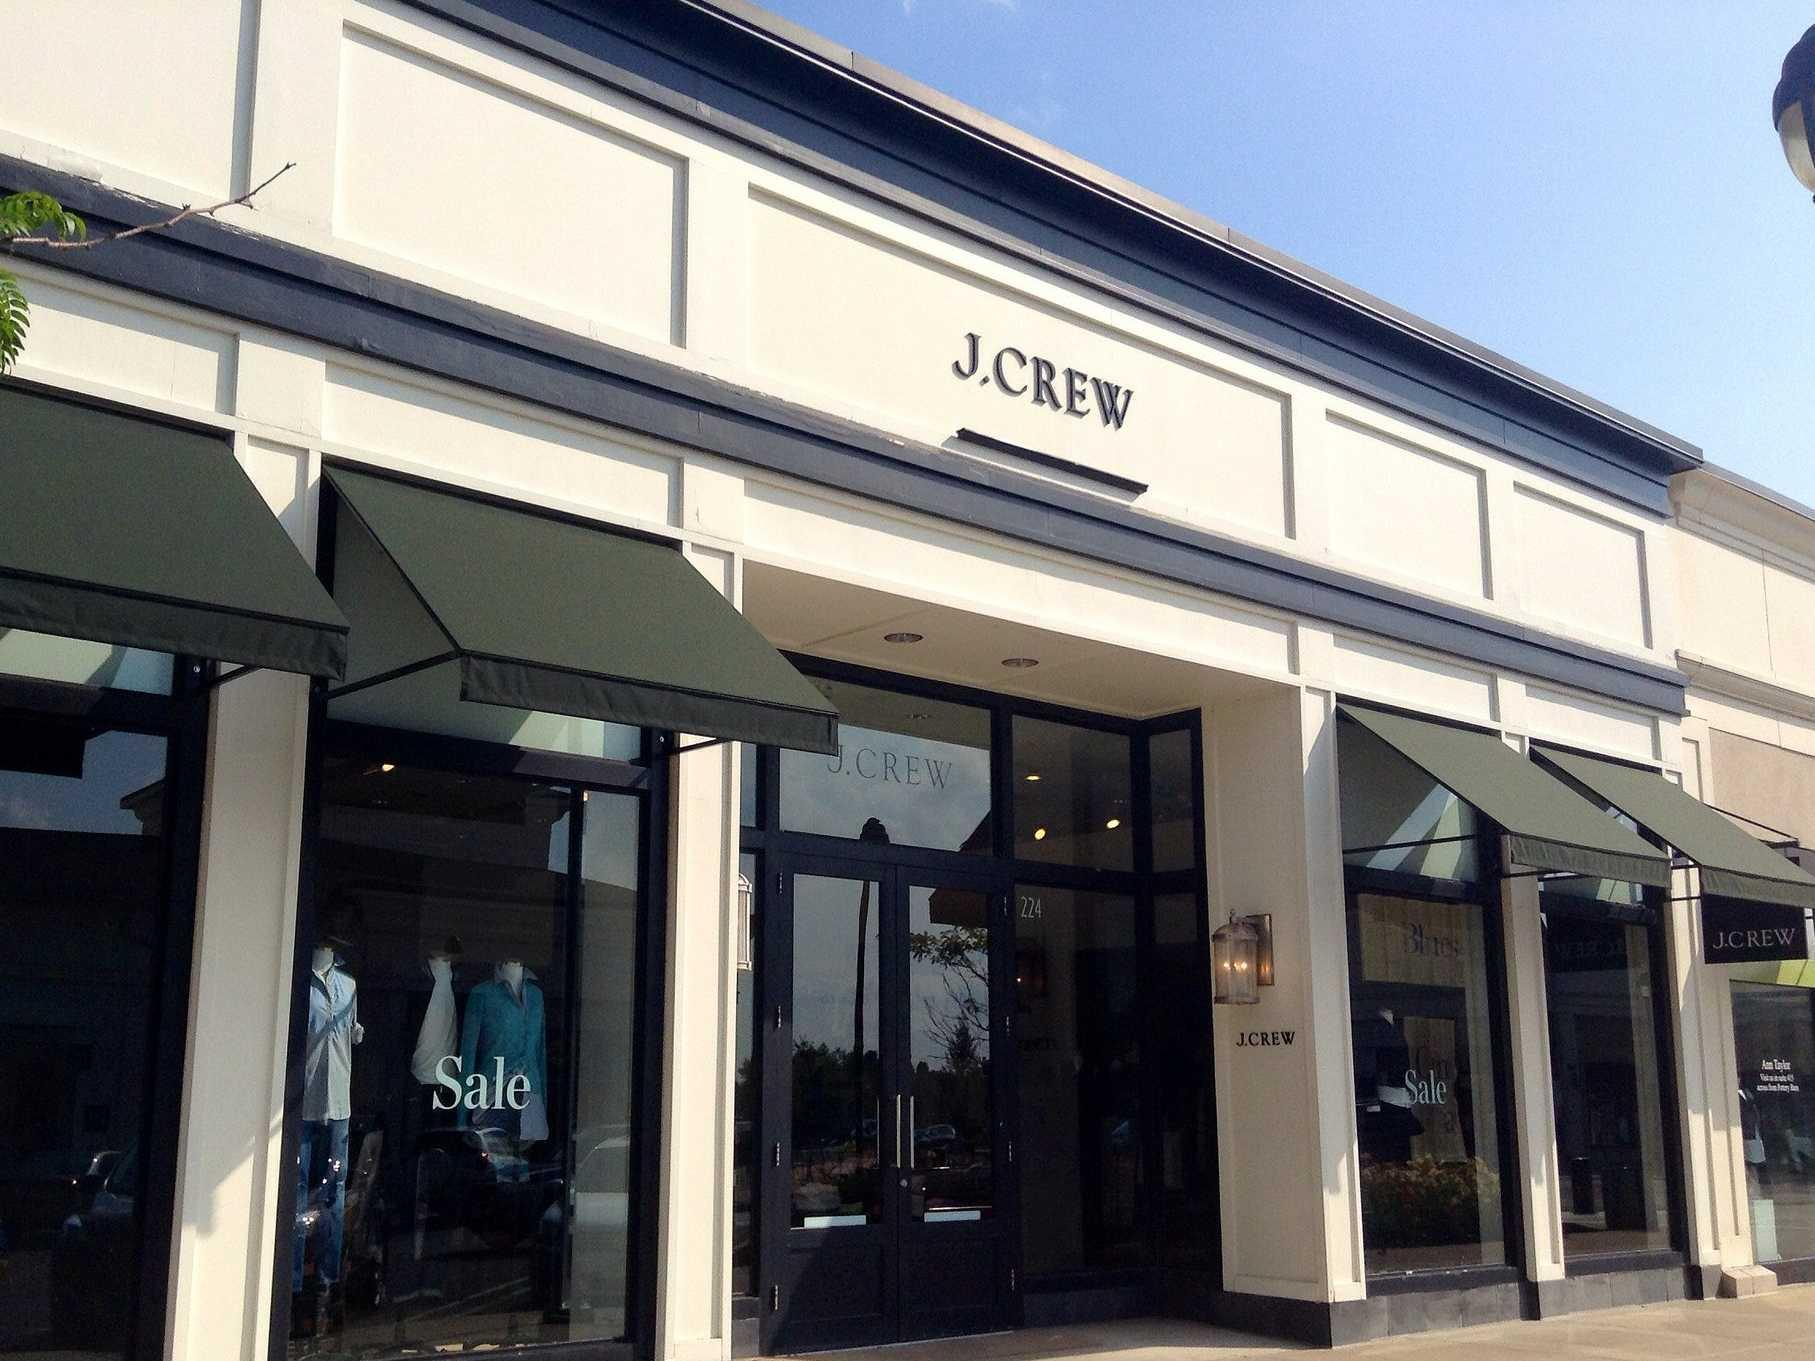 J. Crew isn't cool anymore